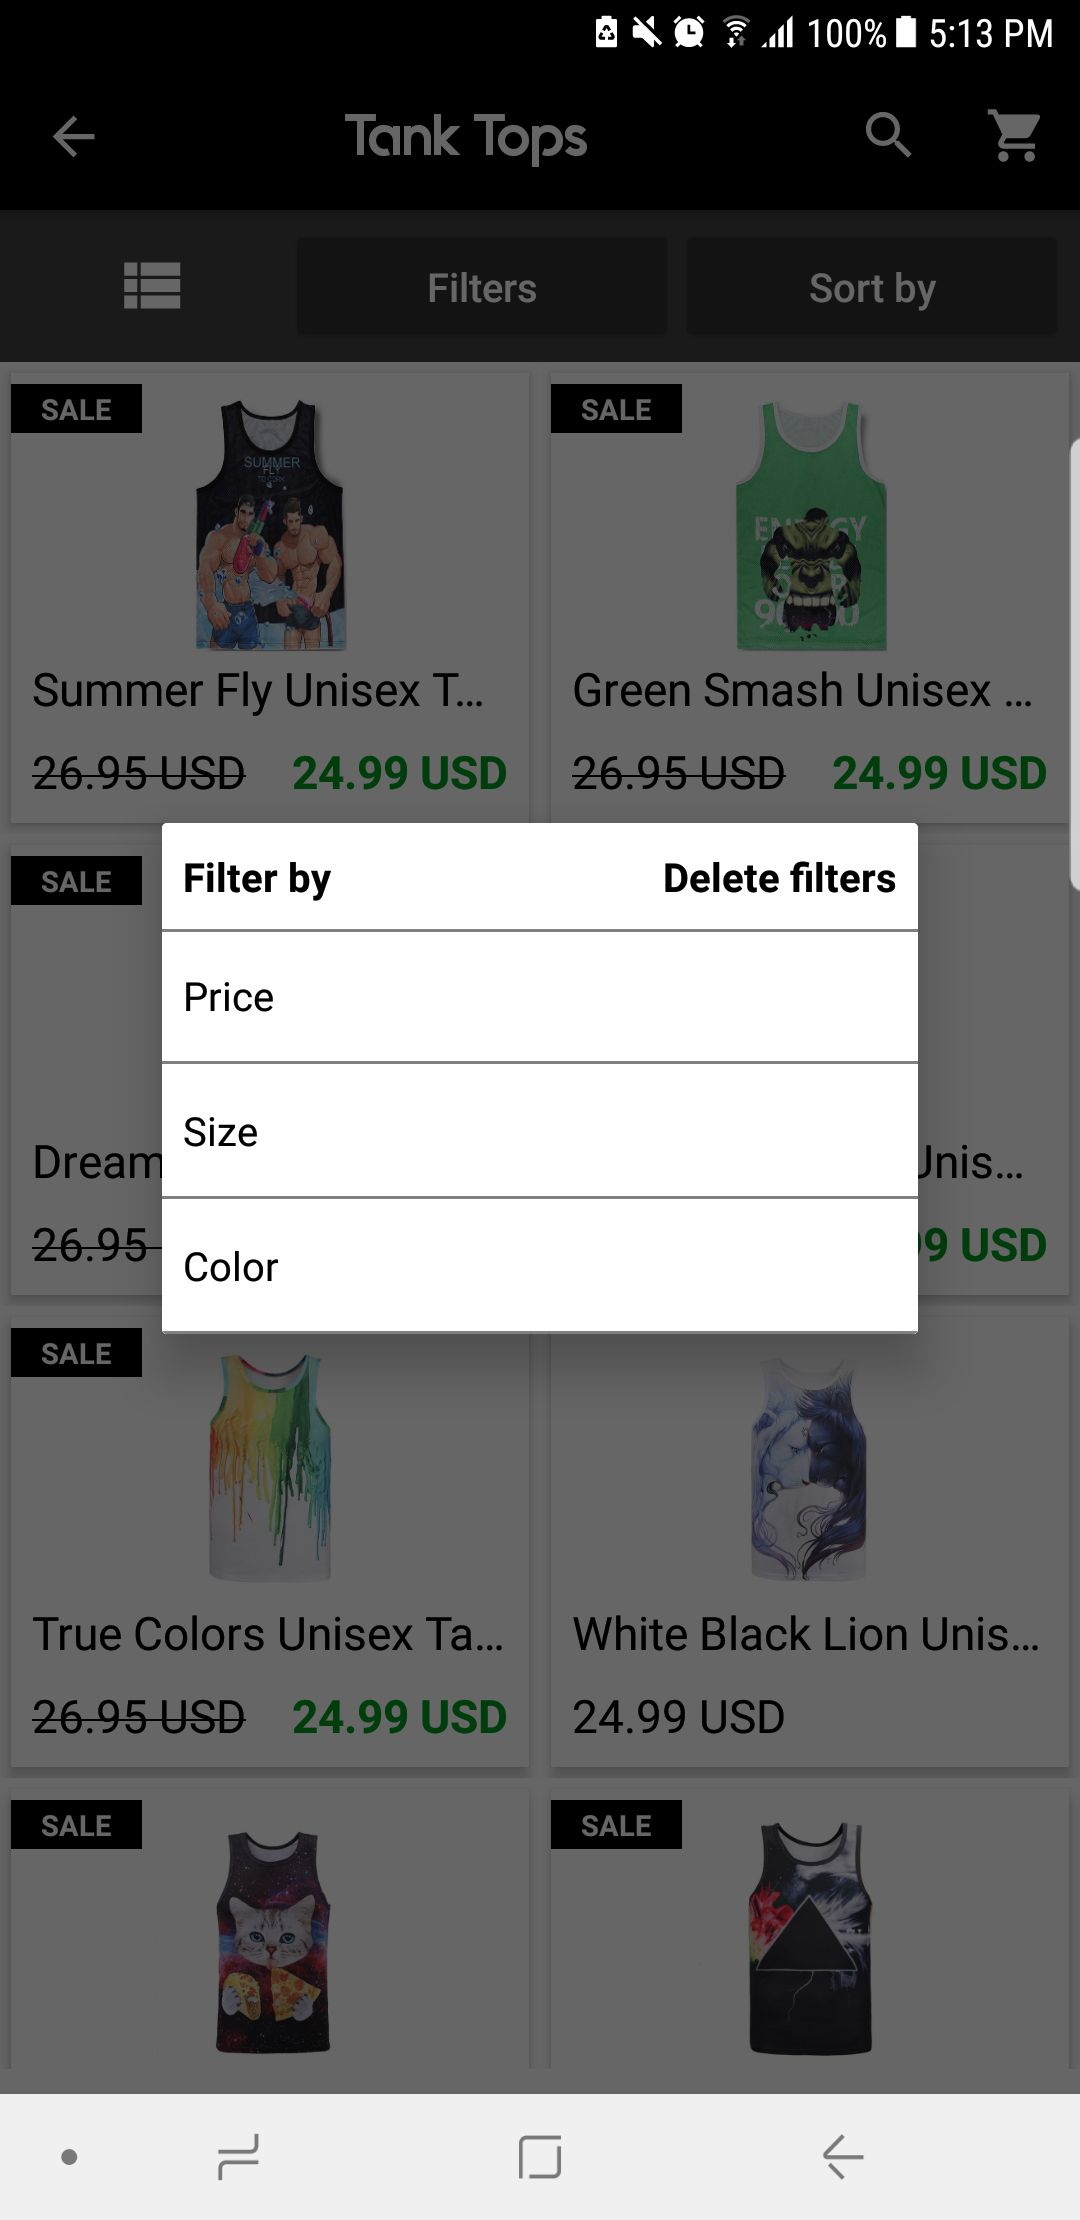 eStore Shopify - Android App Source Code Screenshot 9